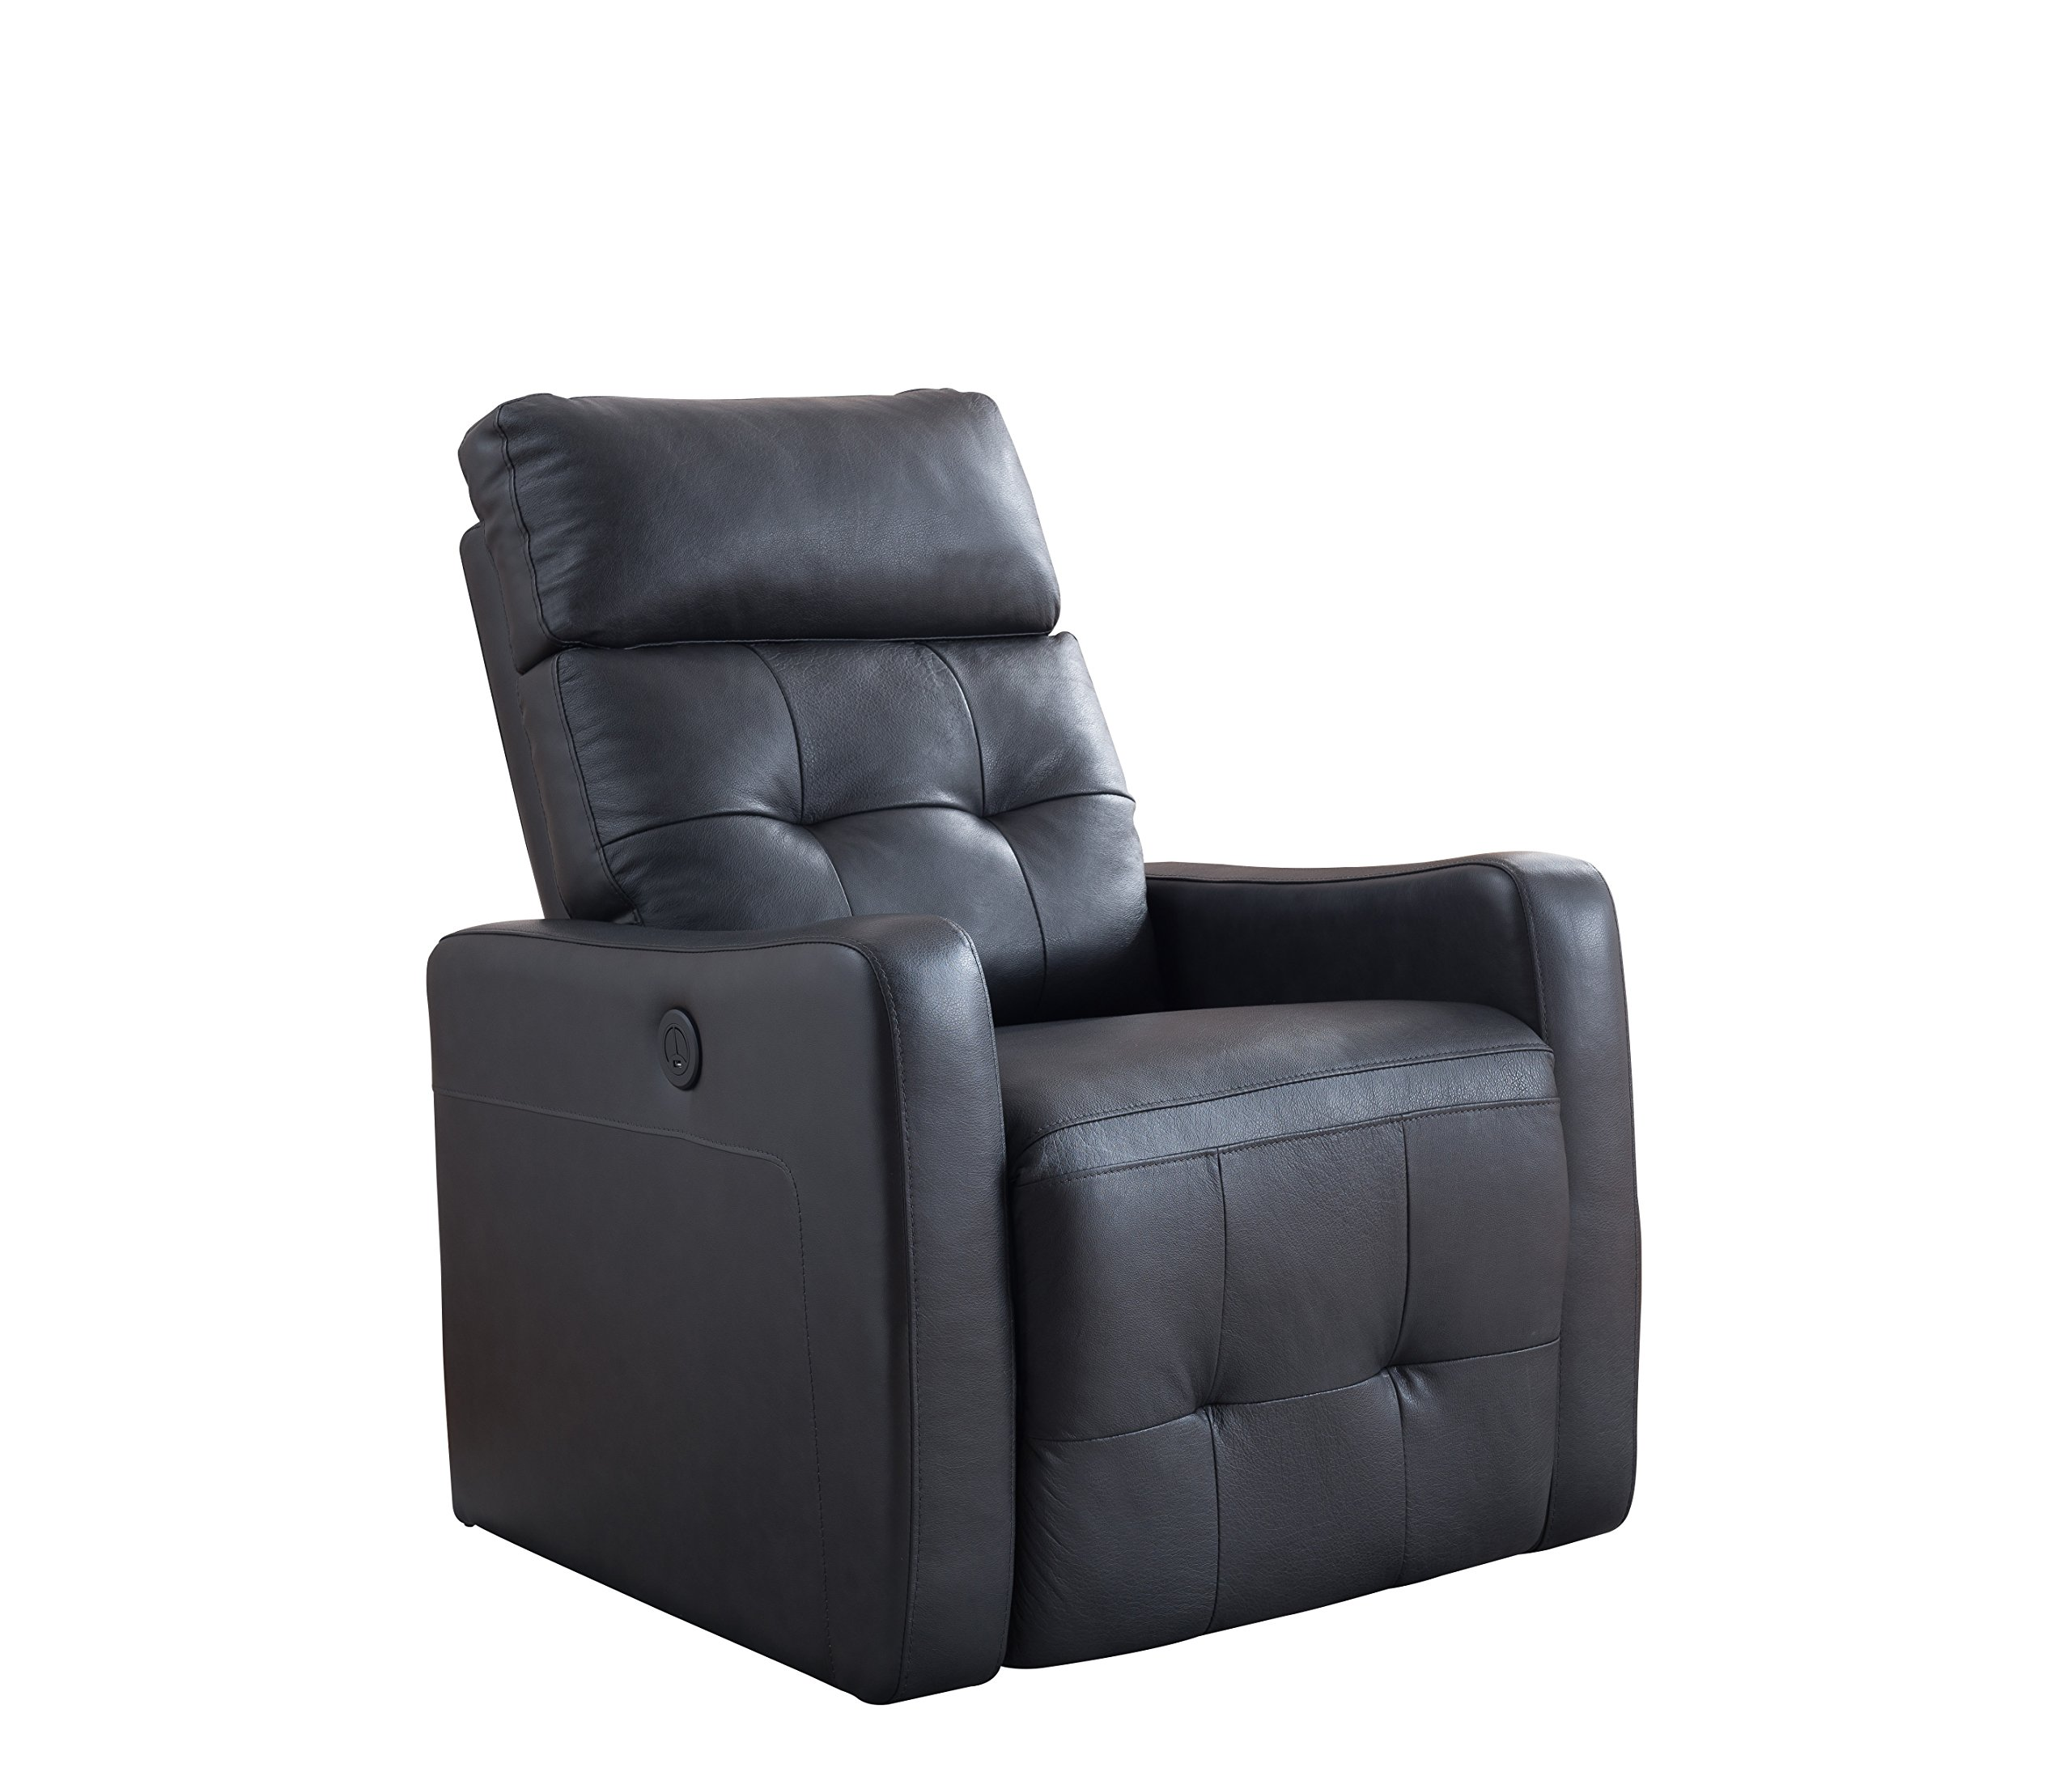 AC Pacific Elsa Collection Contemporary Leather Upholstered Electric Recliner Chair With Adjustable Headrest, Low Arms, Black